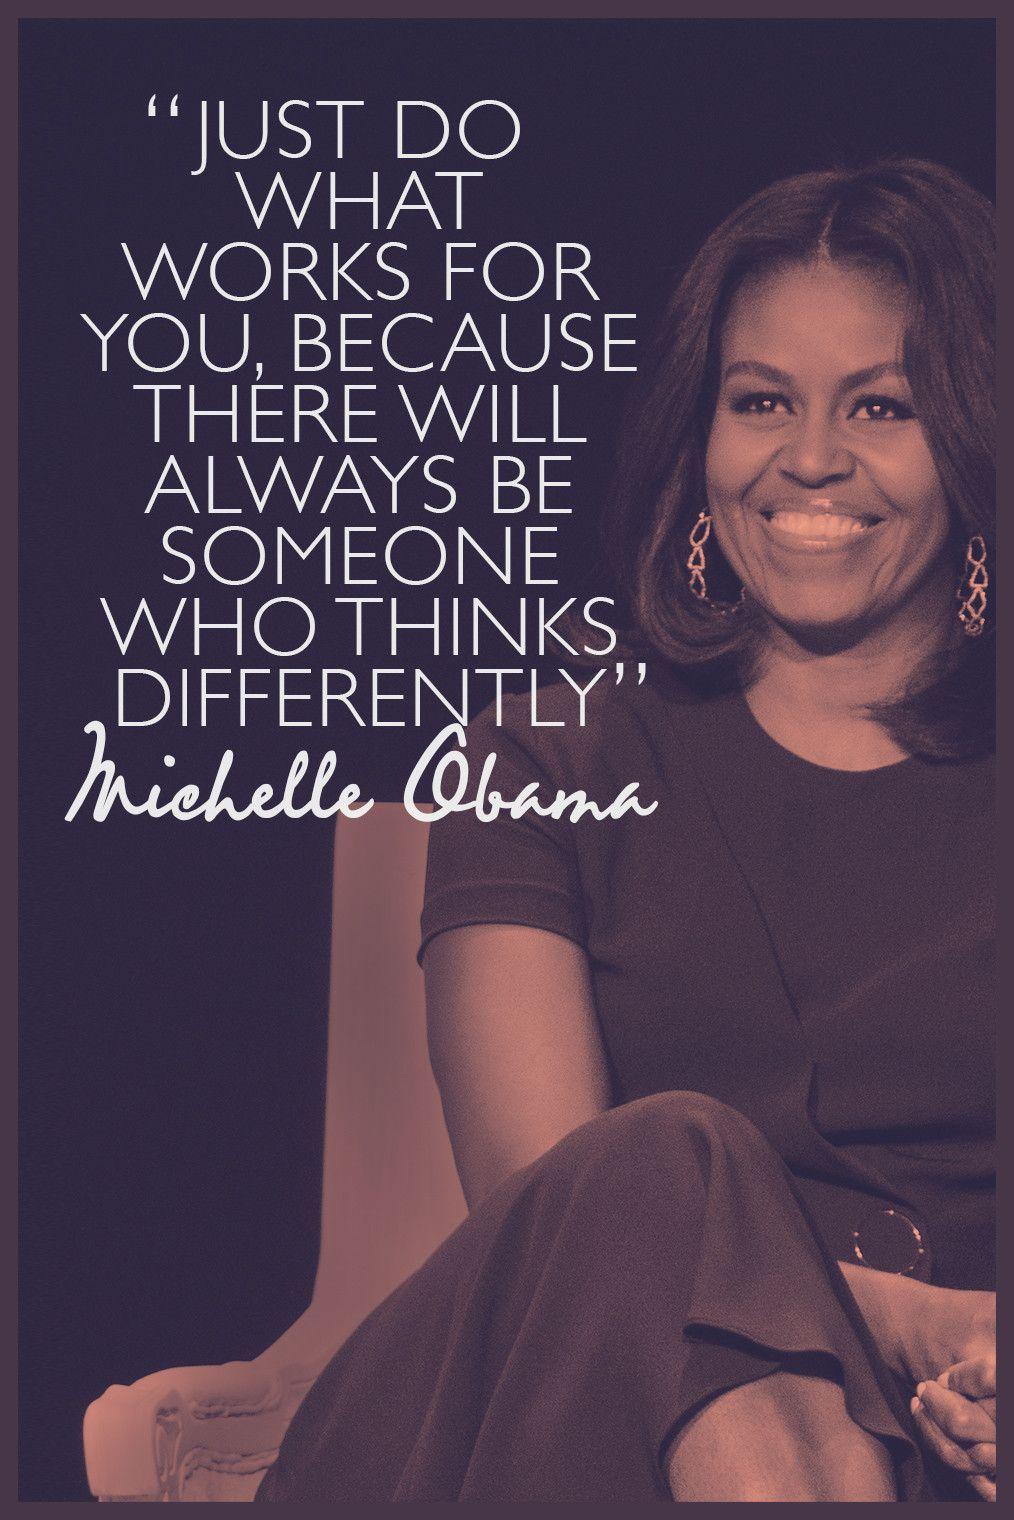 Michelle Obama Quotes Amazing Just Do What Works For You Because There Will Always Be Someone Who